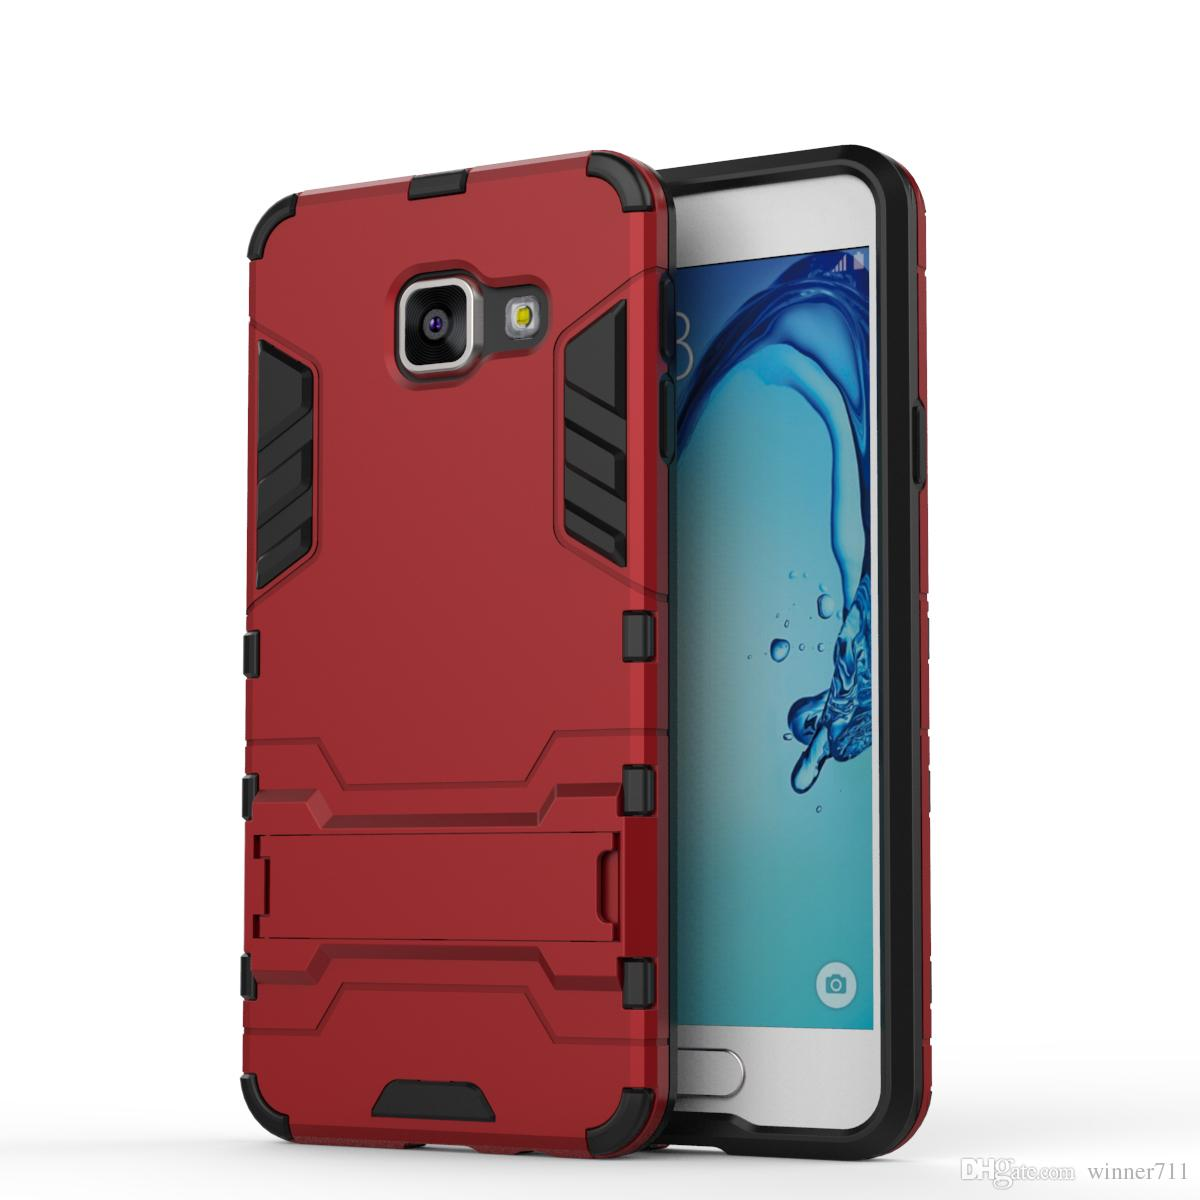 ... Iron Armor Rugged Transformers Robot Stand Hard Case Back Cover Sarung Casing Hp. Source · 7635126_74debfef-6031-4690-be61-1b30bd59781f.jpg